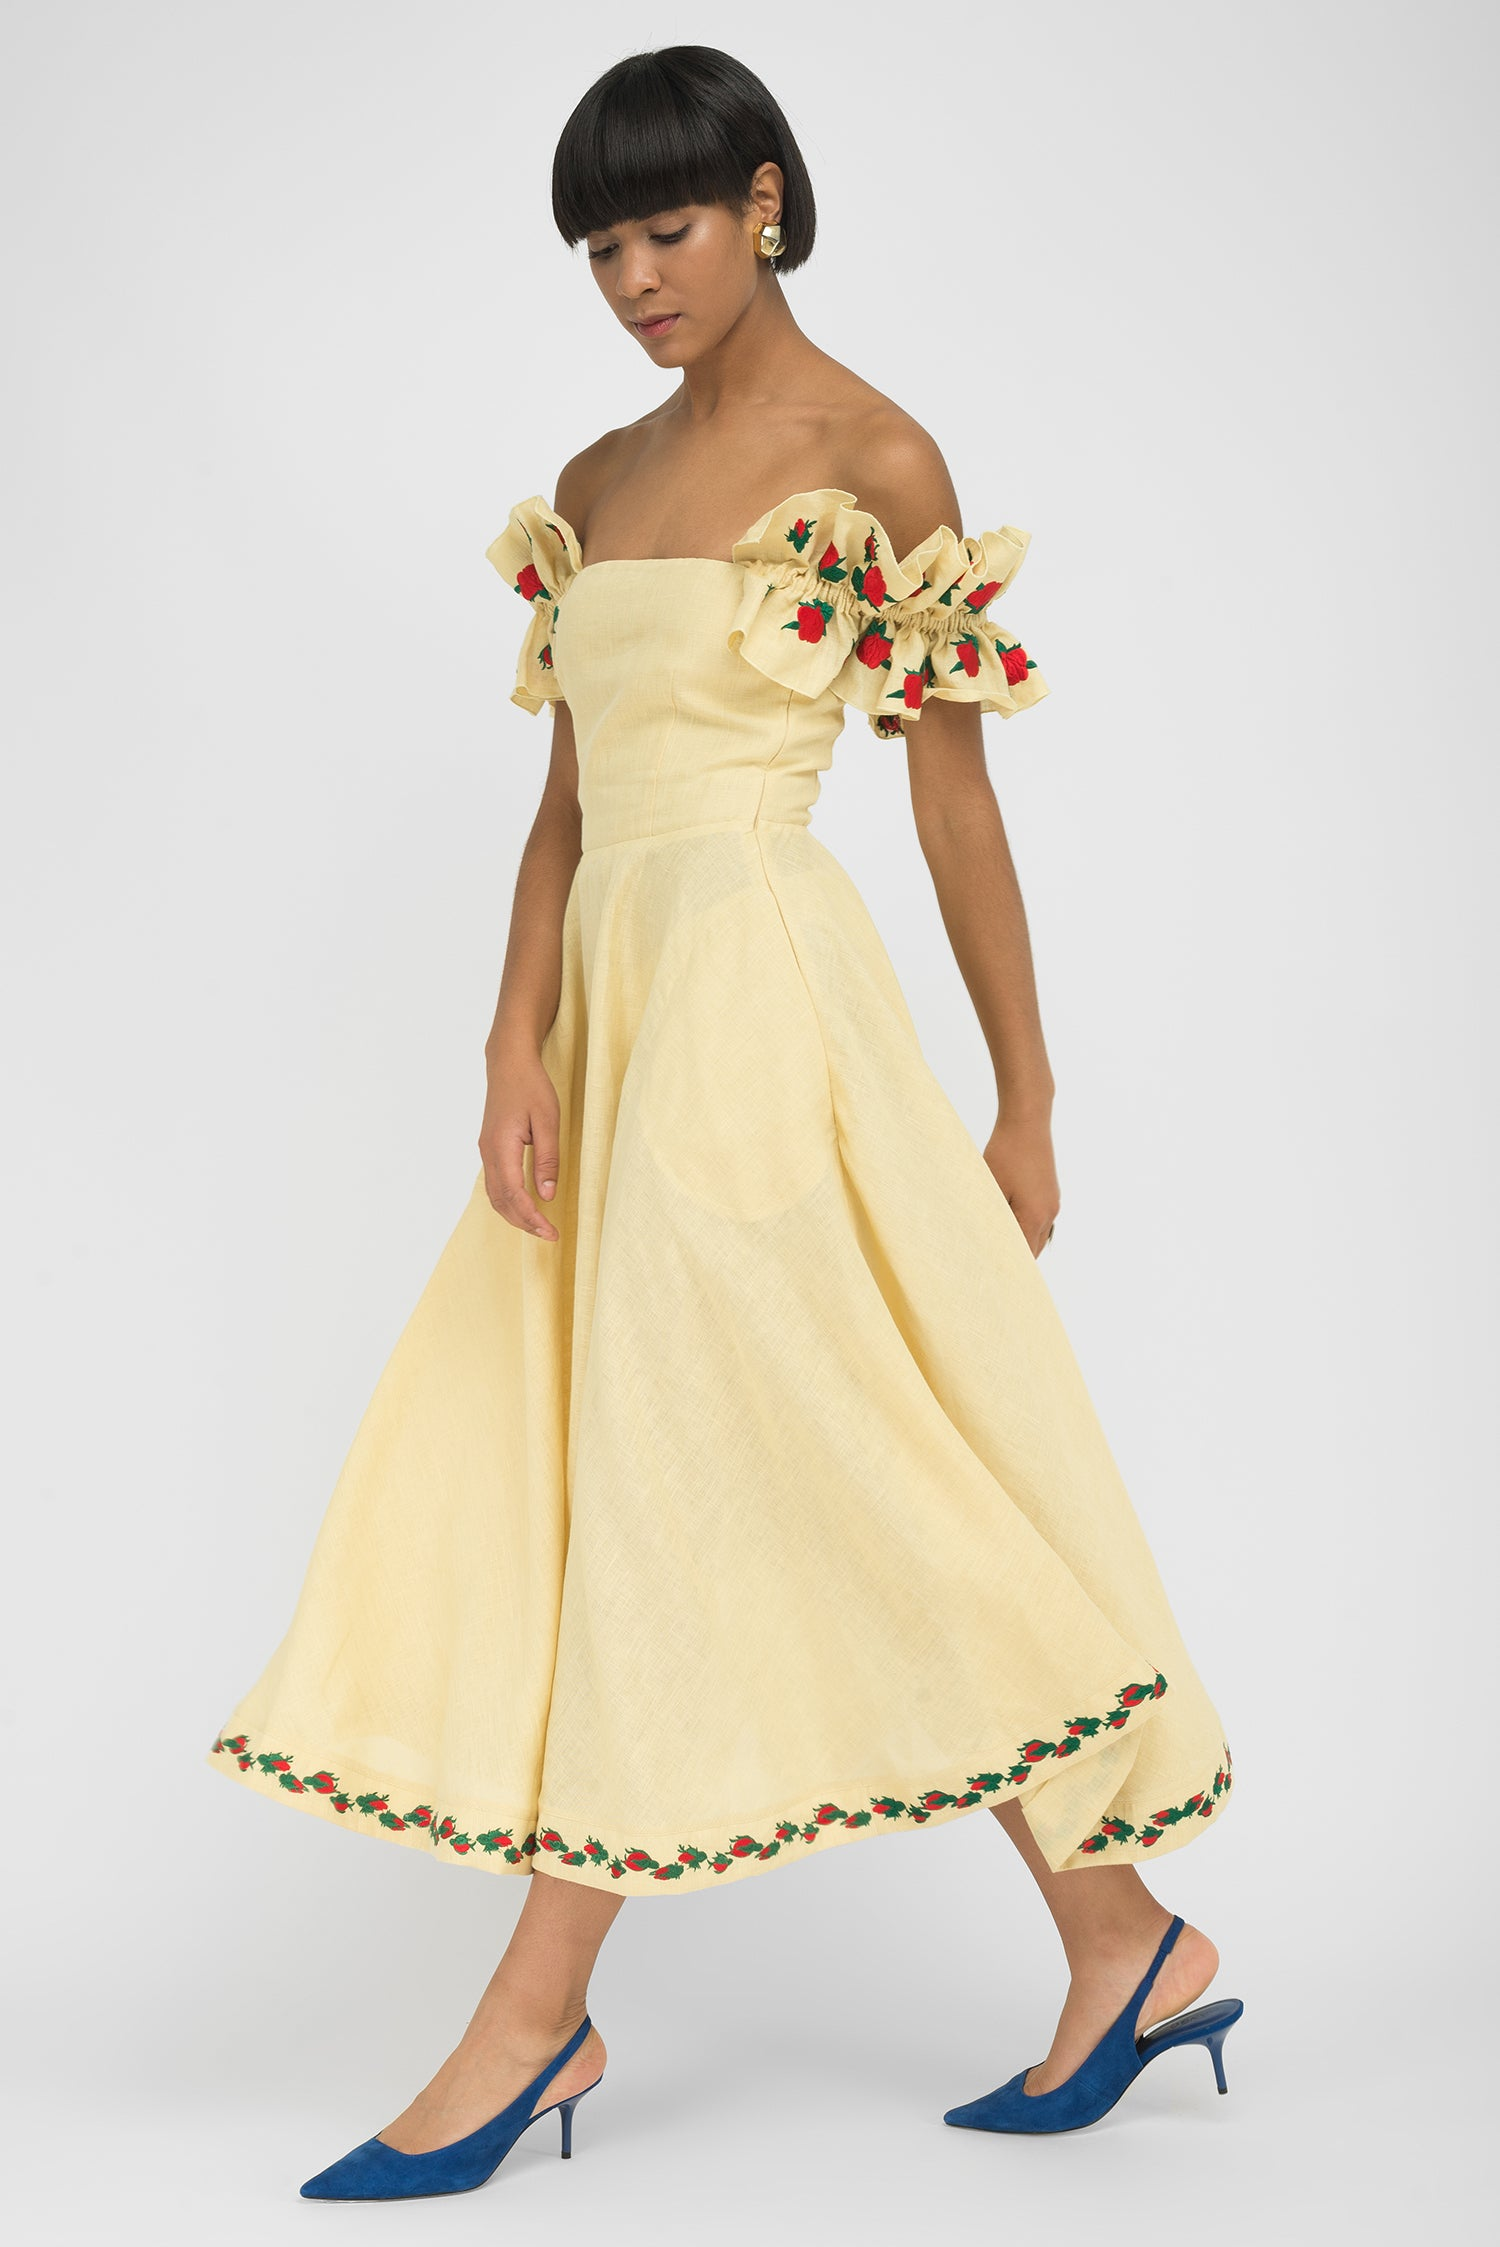 FANM MON ALANYA Light Yellow Linen Off On Shoulder Embroidered Midi Dress